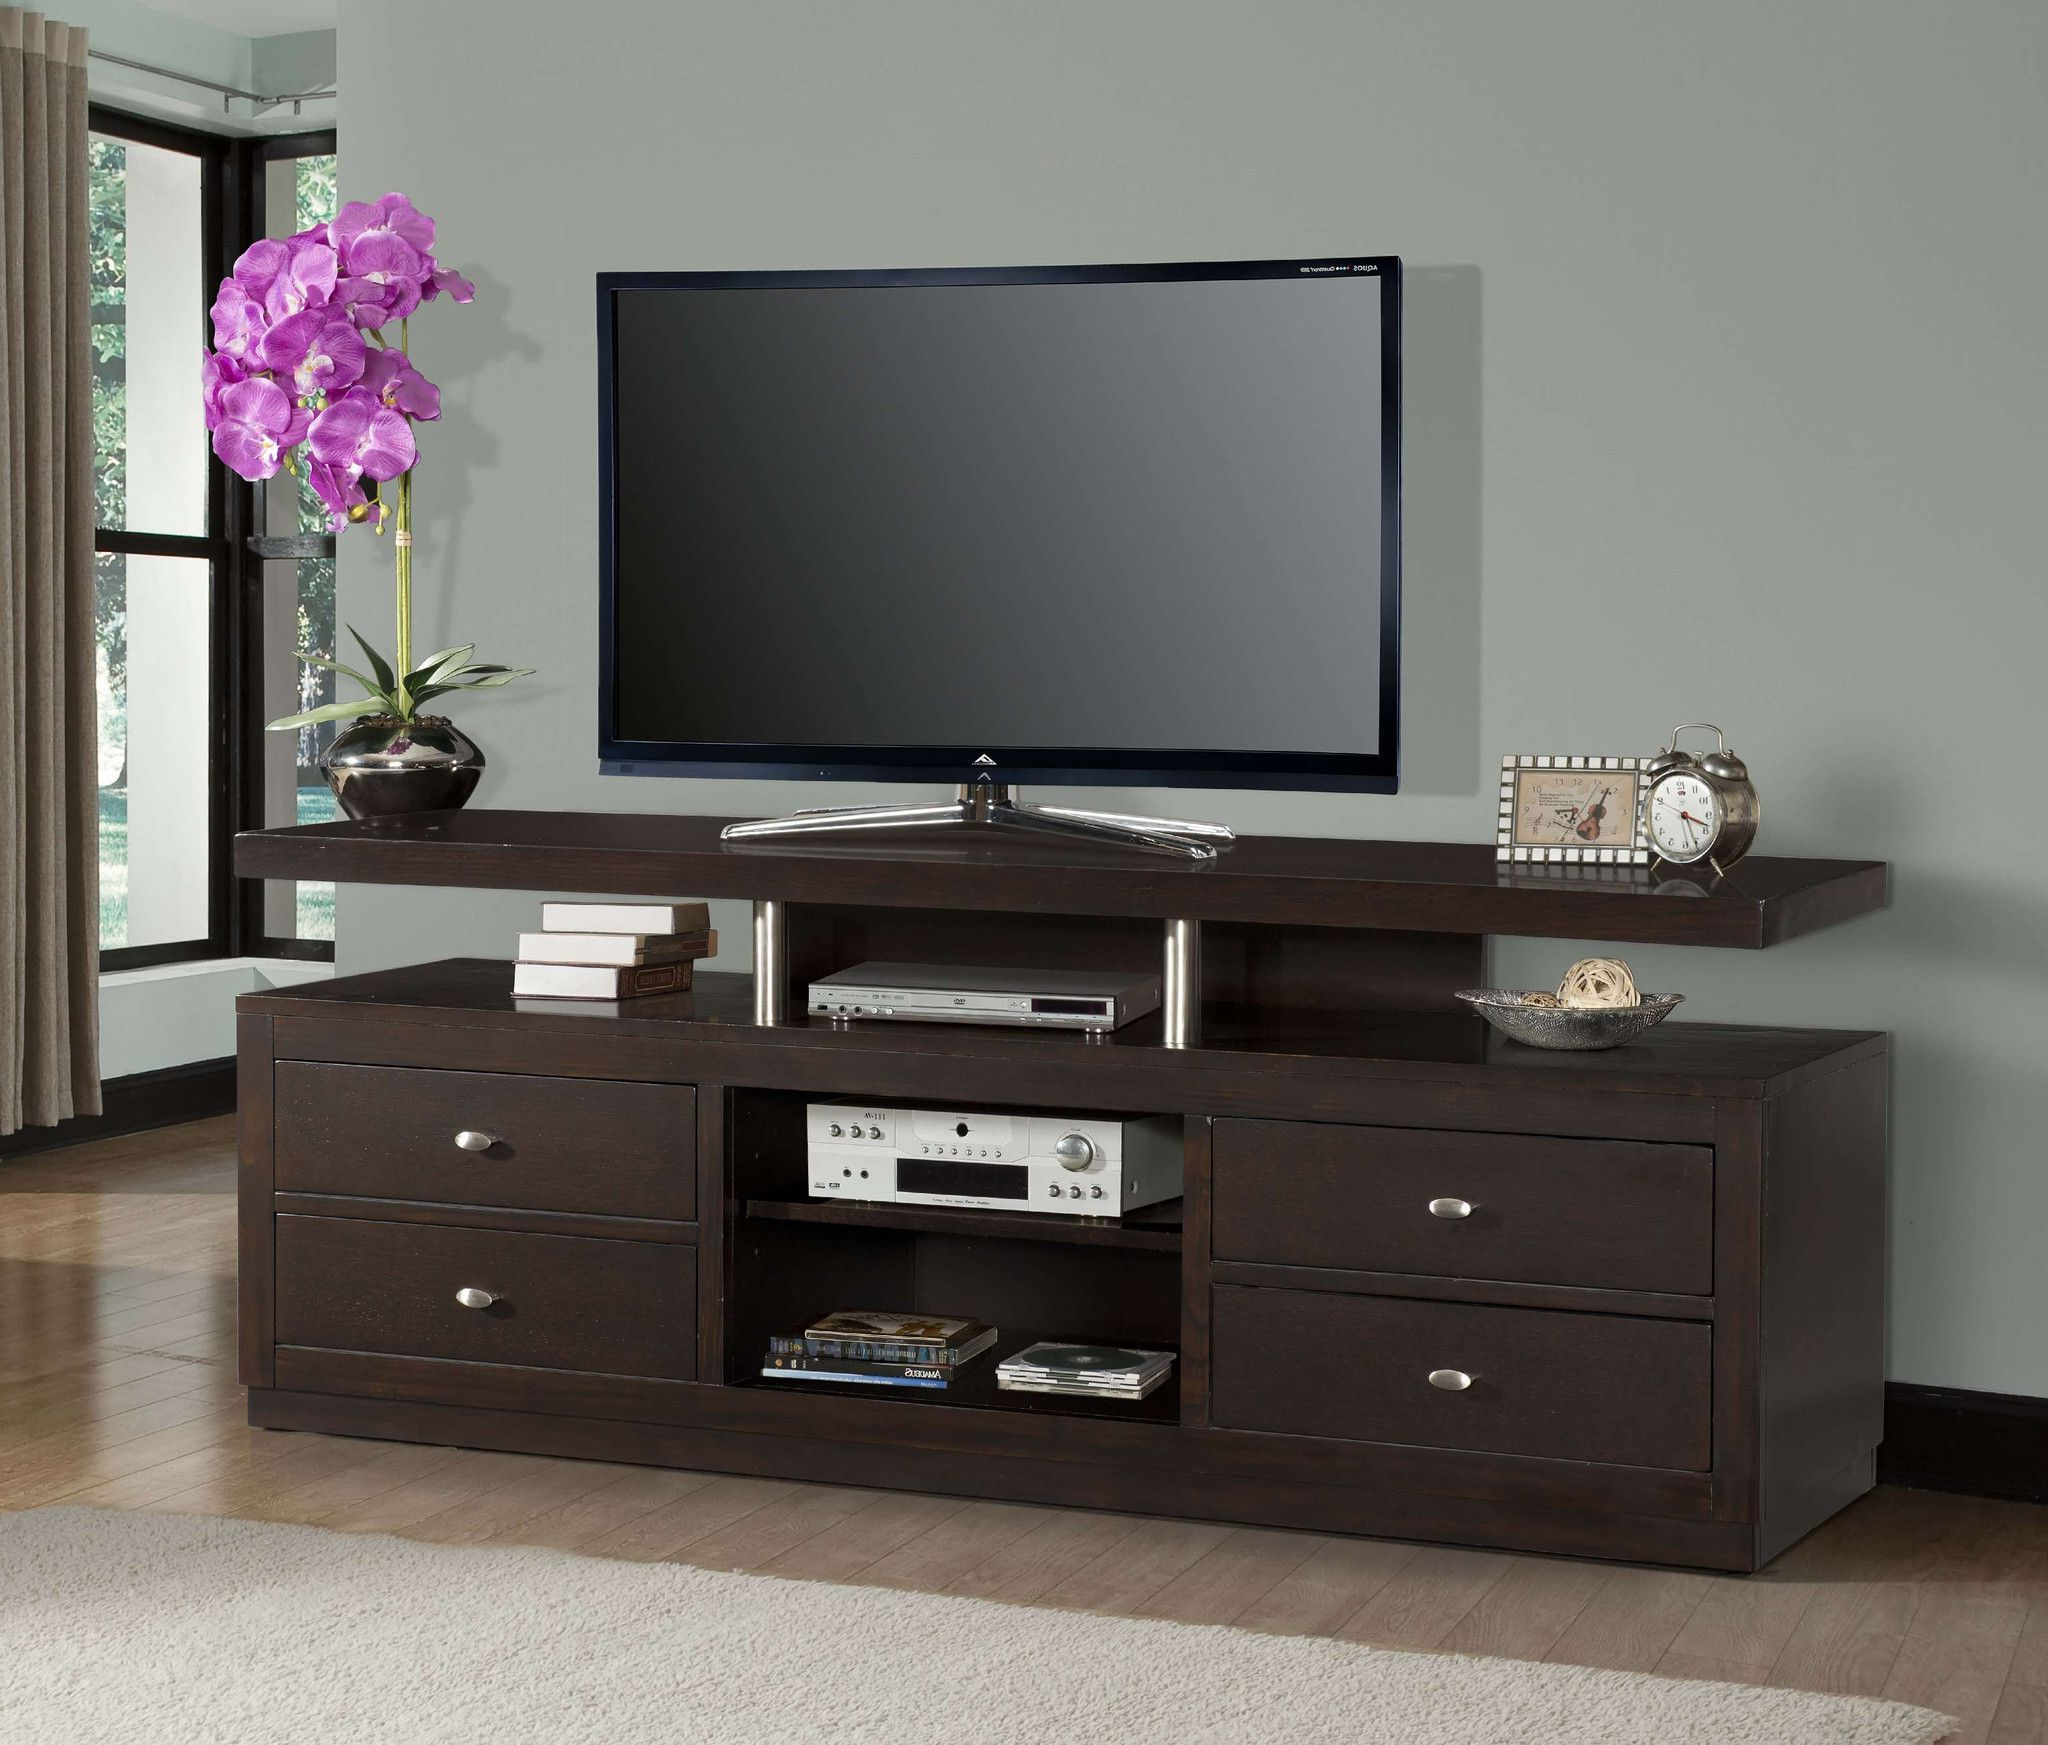 Buy My House, Tv In Well Known Tiva Oak Ladder Tv Stands (View 4 of 10)